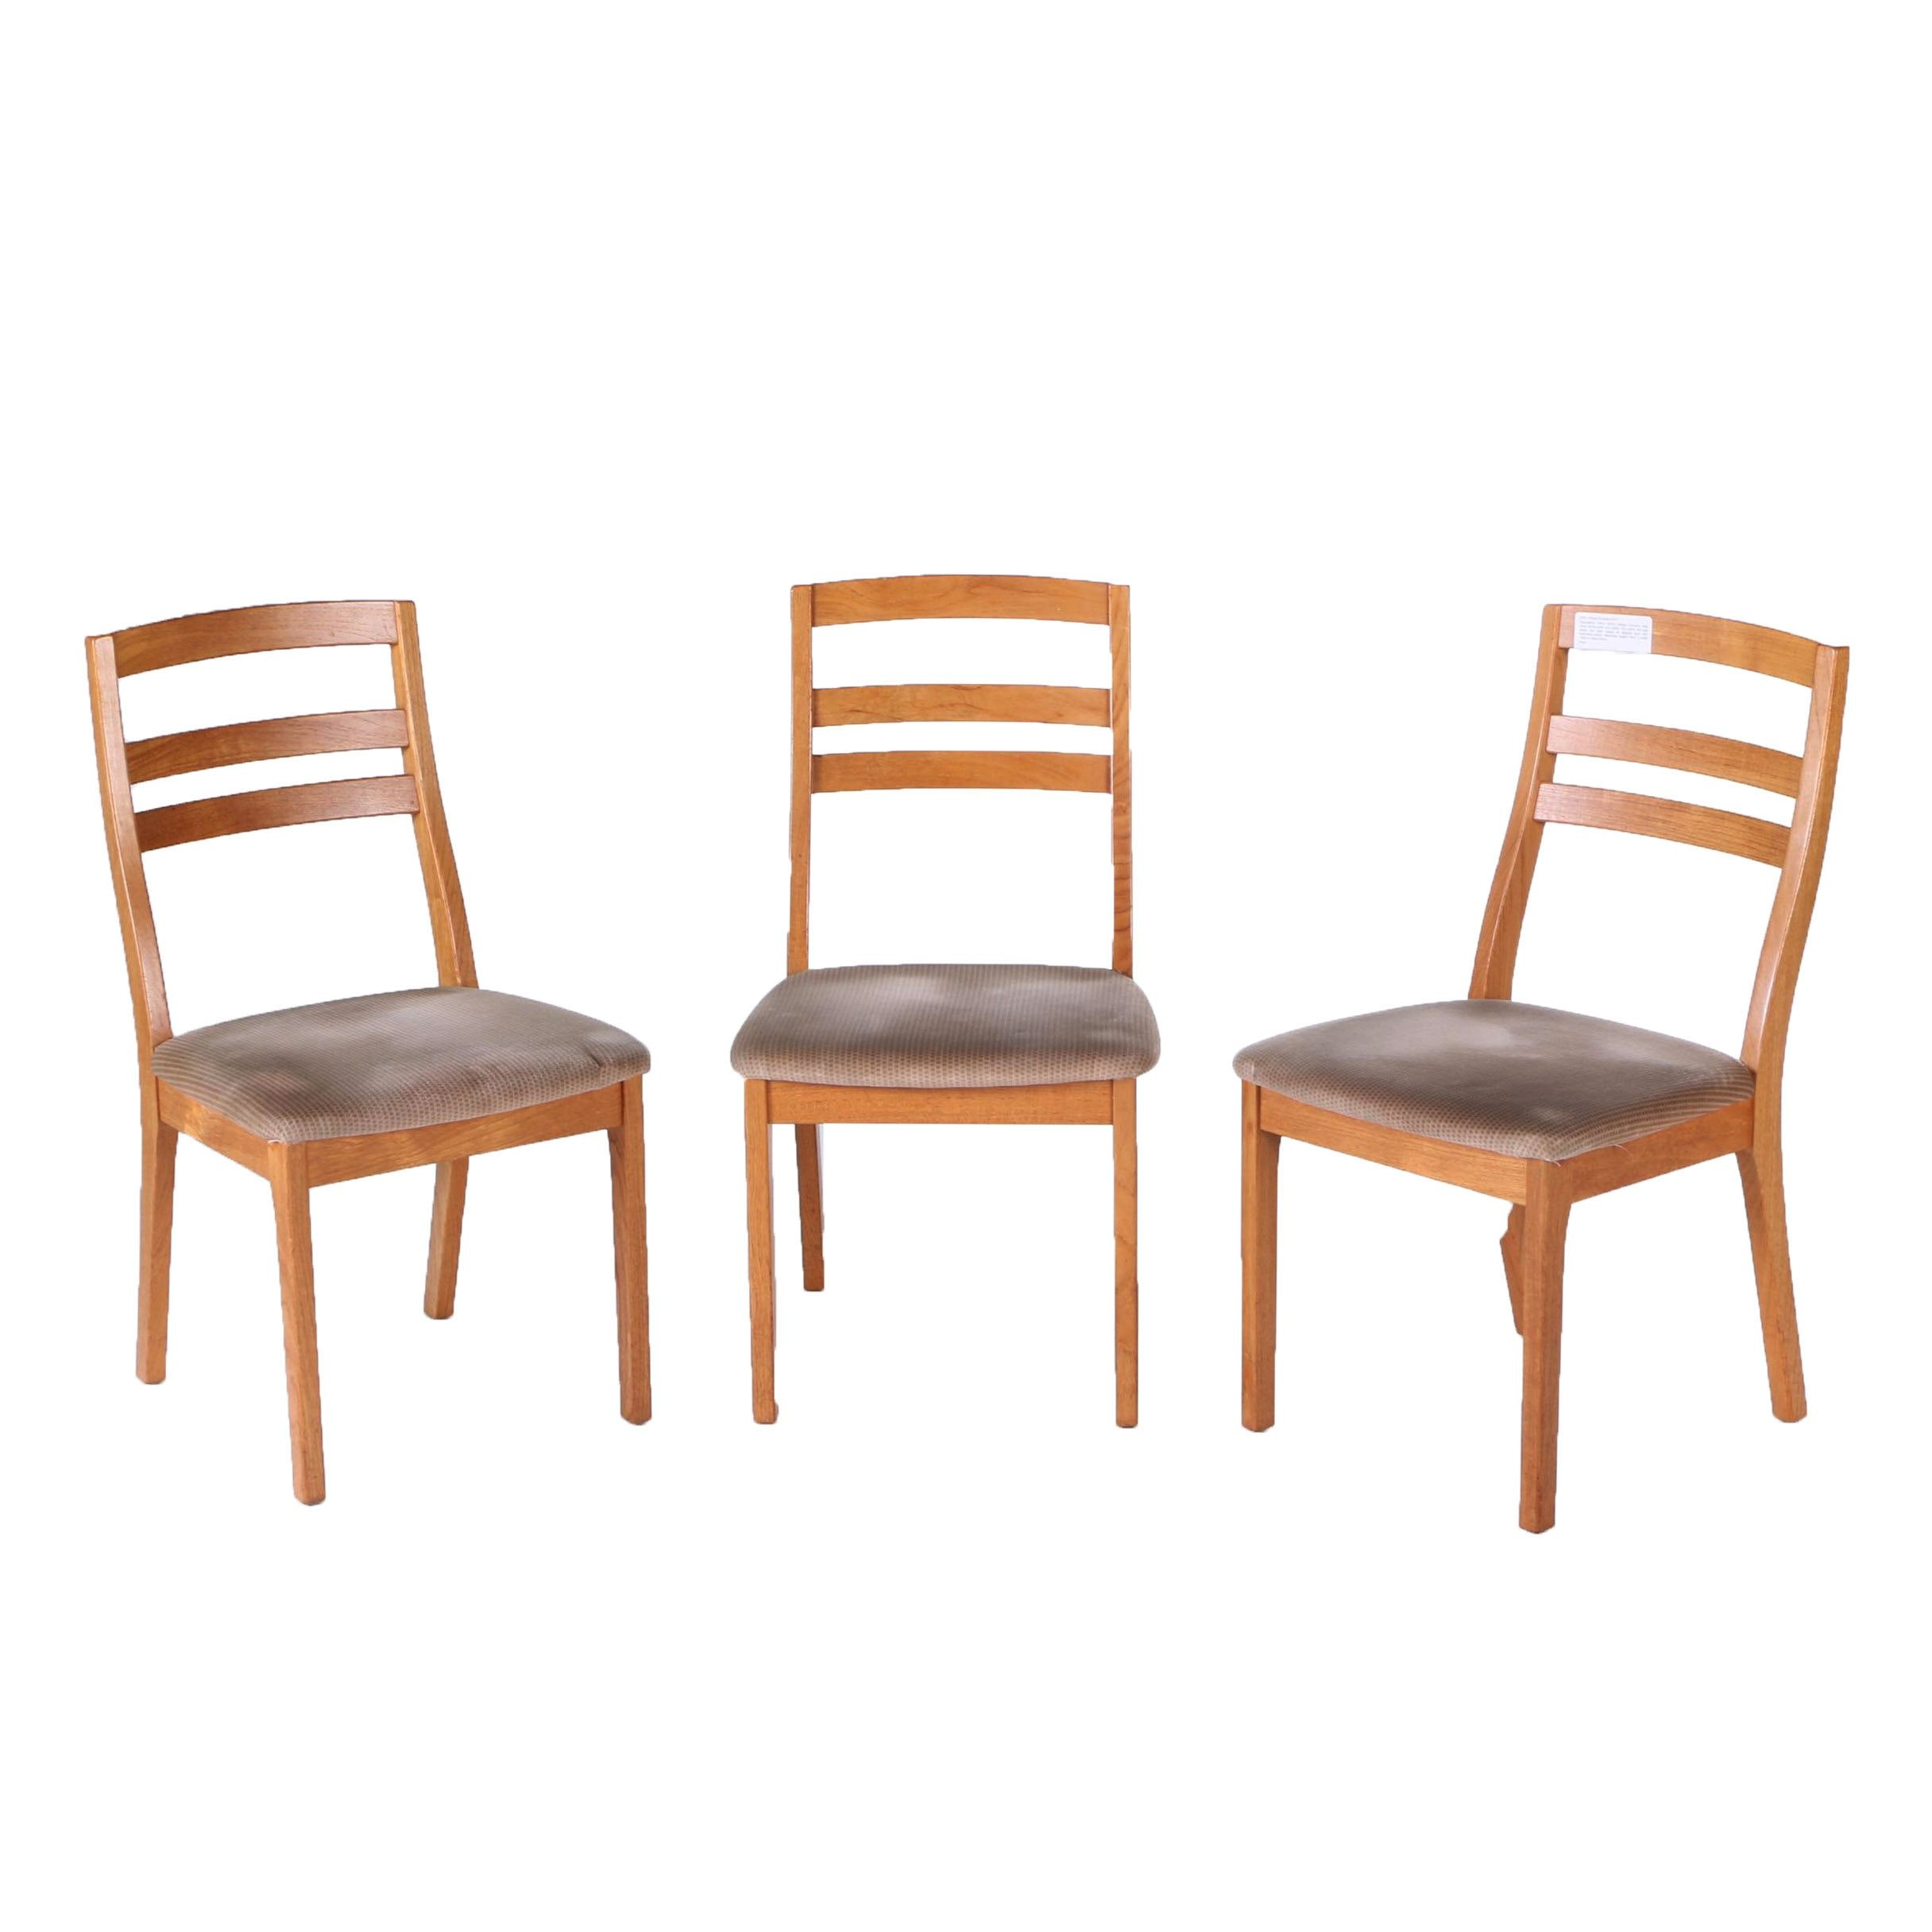 Three Mid Century Modern Teak Dining Chairs by Nathan Furniture